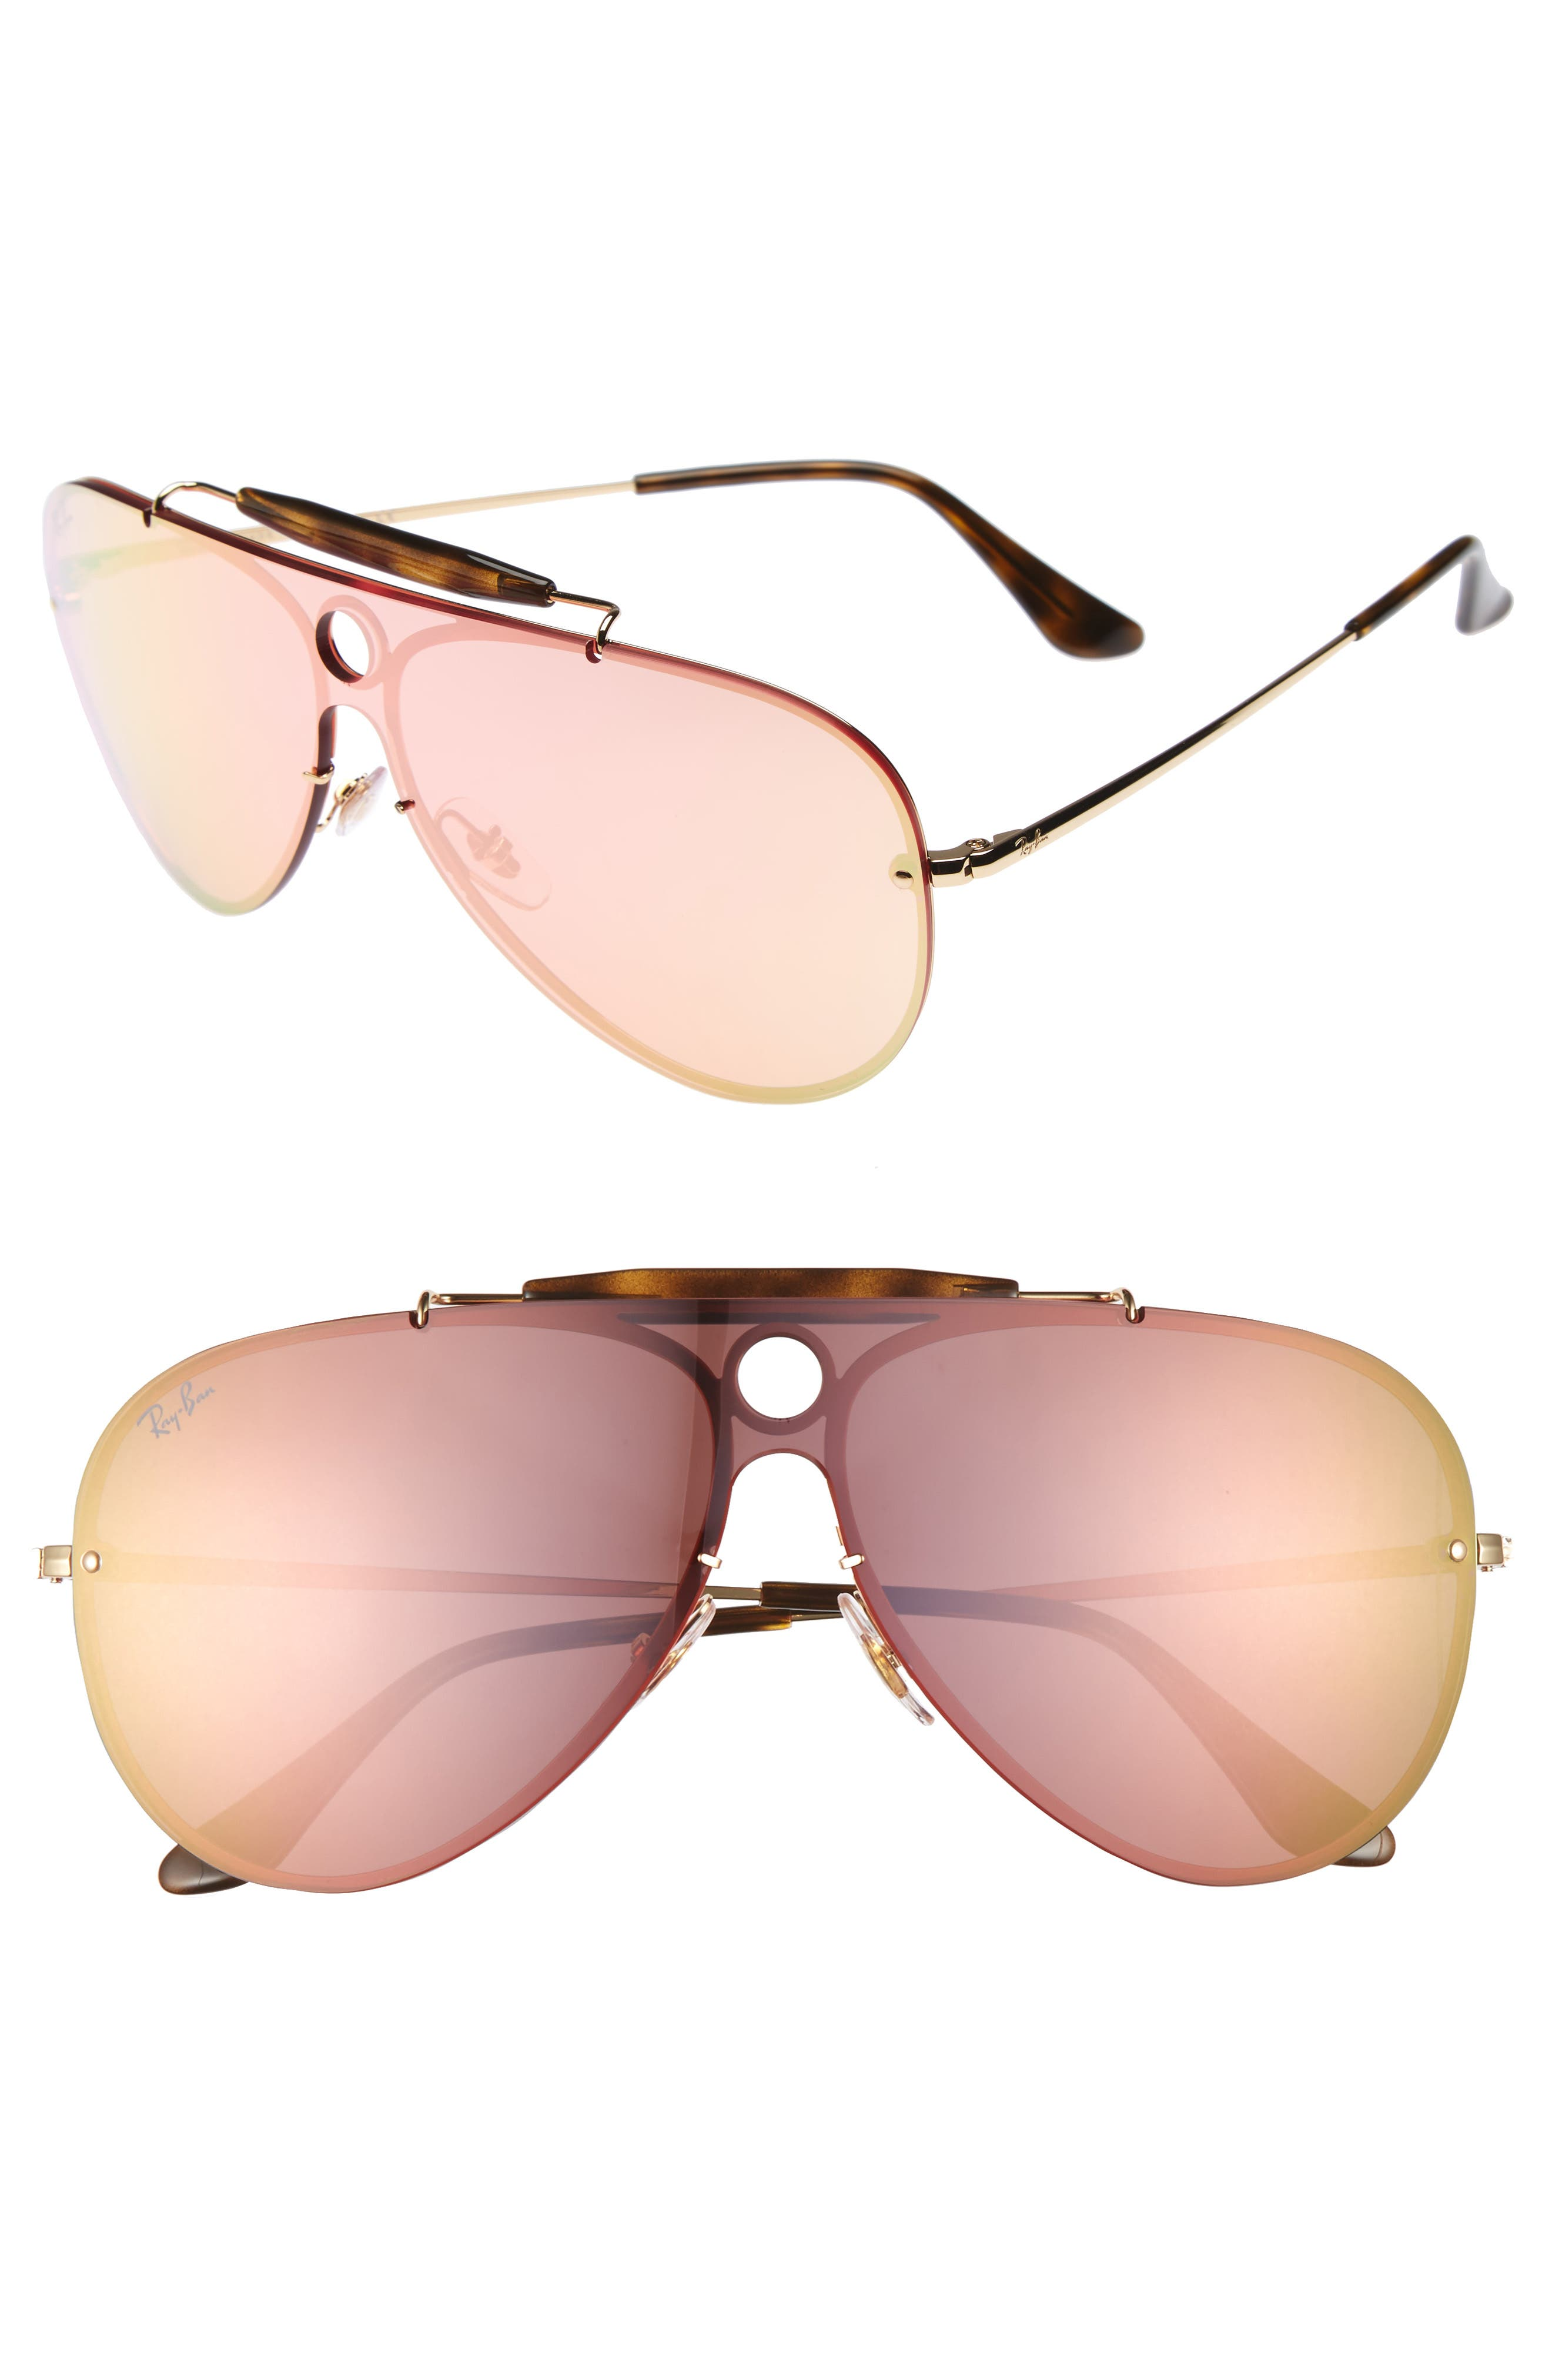 Main Image - Ray-Ban Aviator Shield Sunglasses